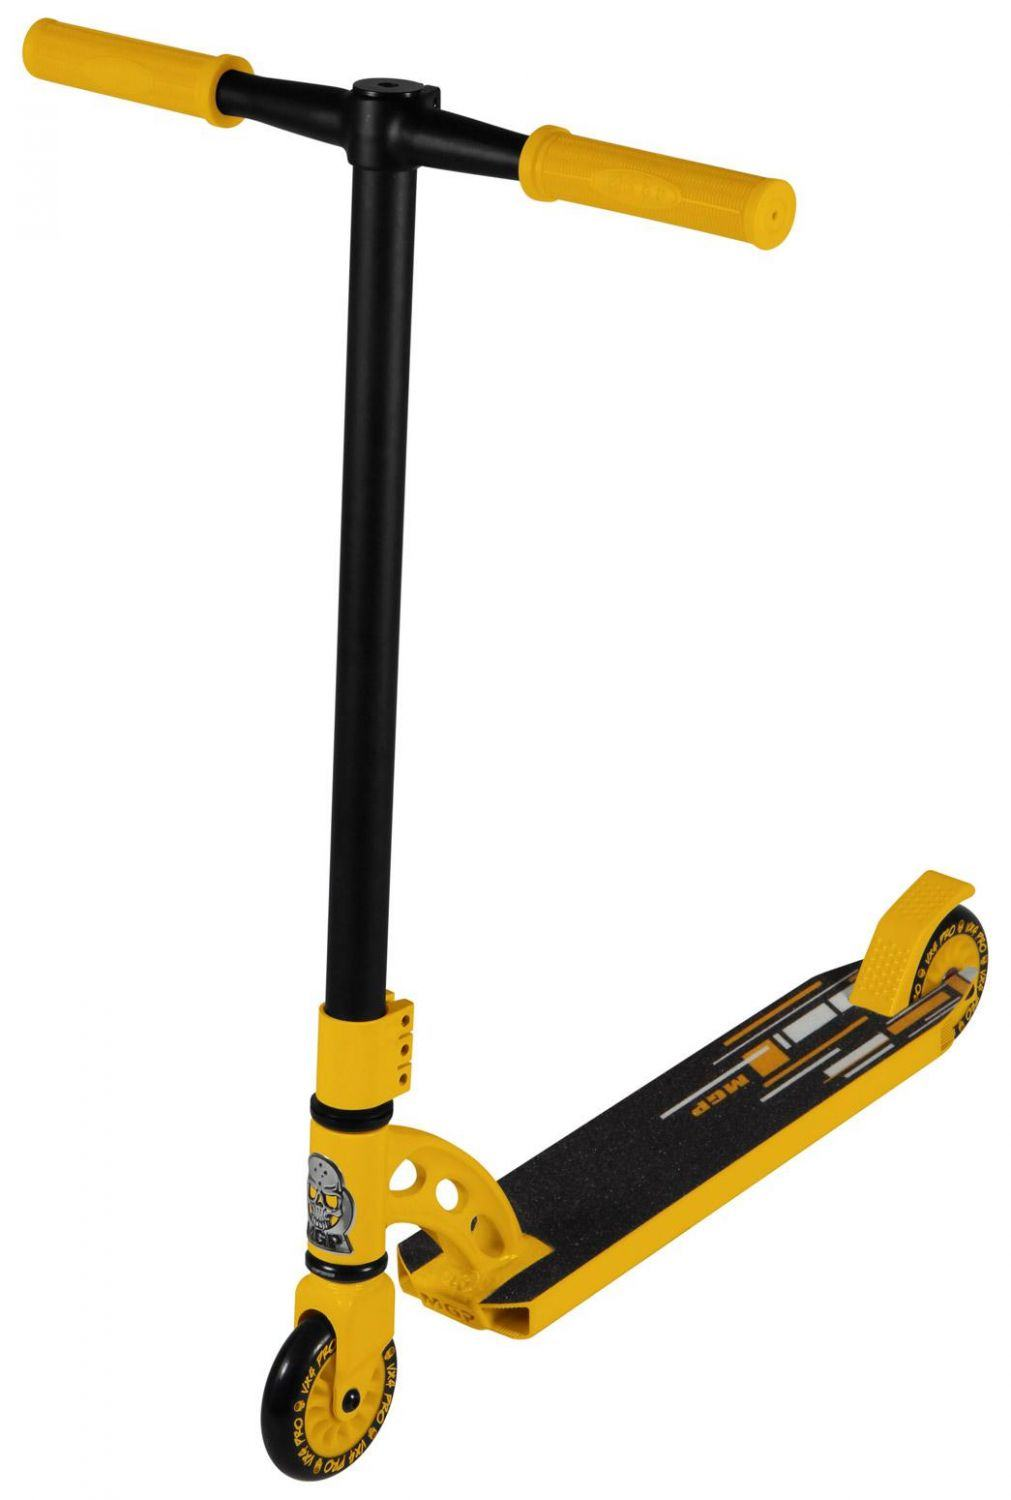 MADD Stuntscooter VX4 Pro (Farbe: gelb) Sale Angebote Hohenbocka